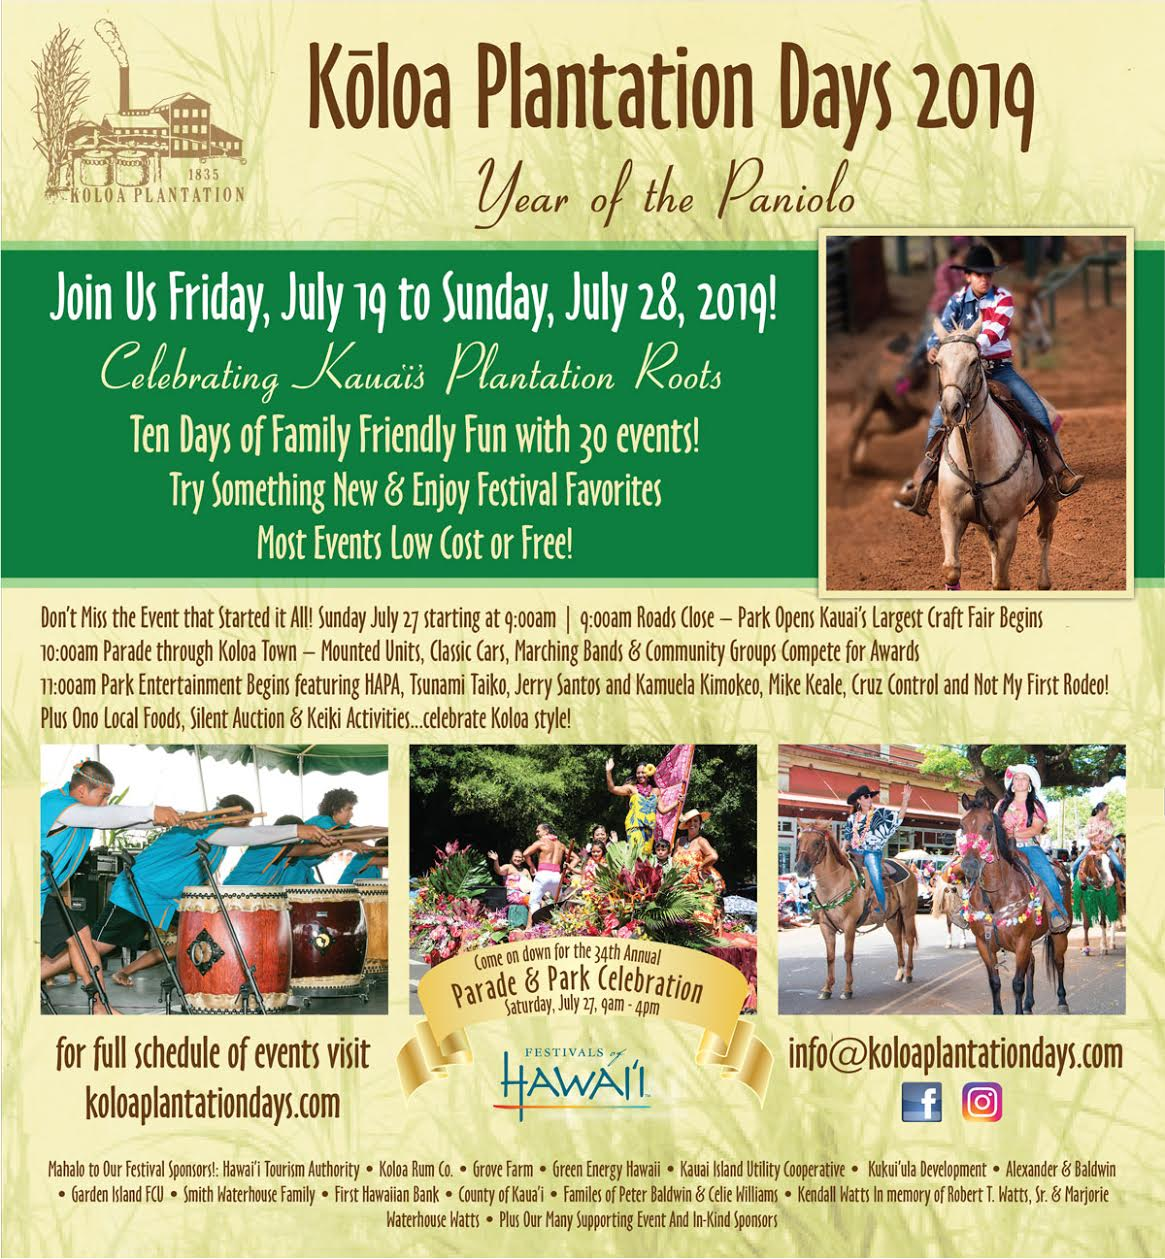 For Kauai Calendar Events for August 2019